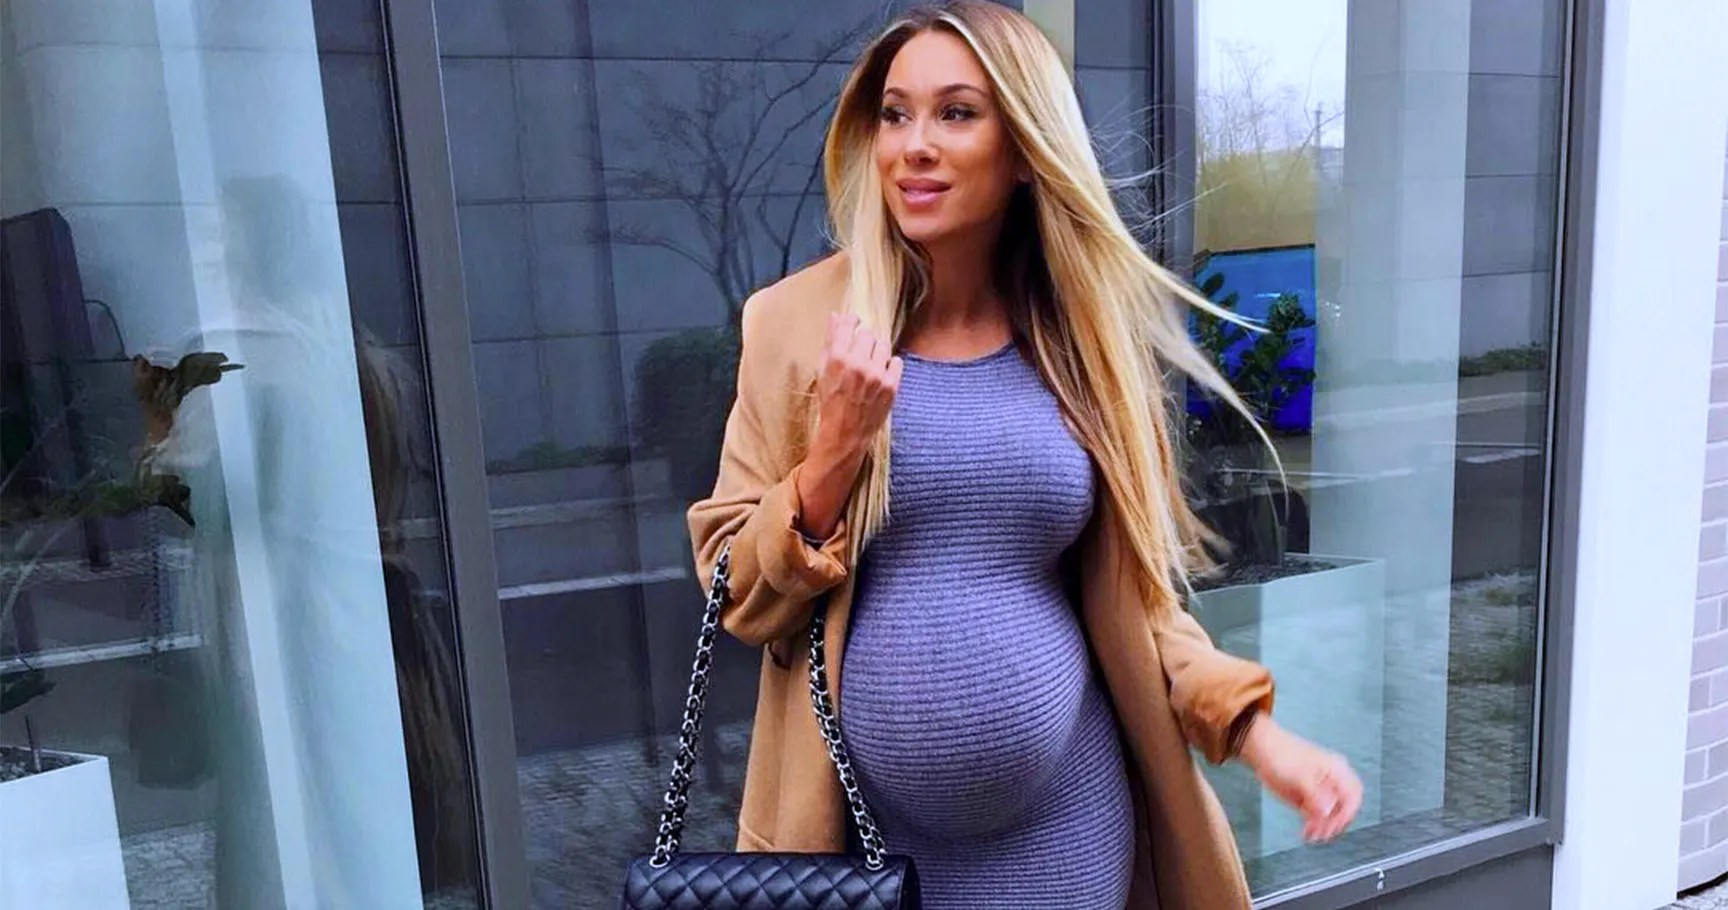 fc5837ba997d6 Anyone who's been pregnant will say that dressing a growing baby bump is no  easy task! While pregnant, moms-to-be are constantly getting used to their  ...